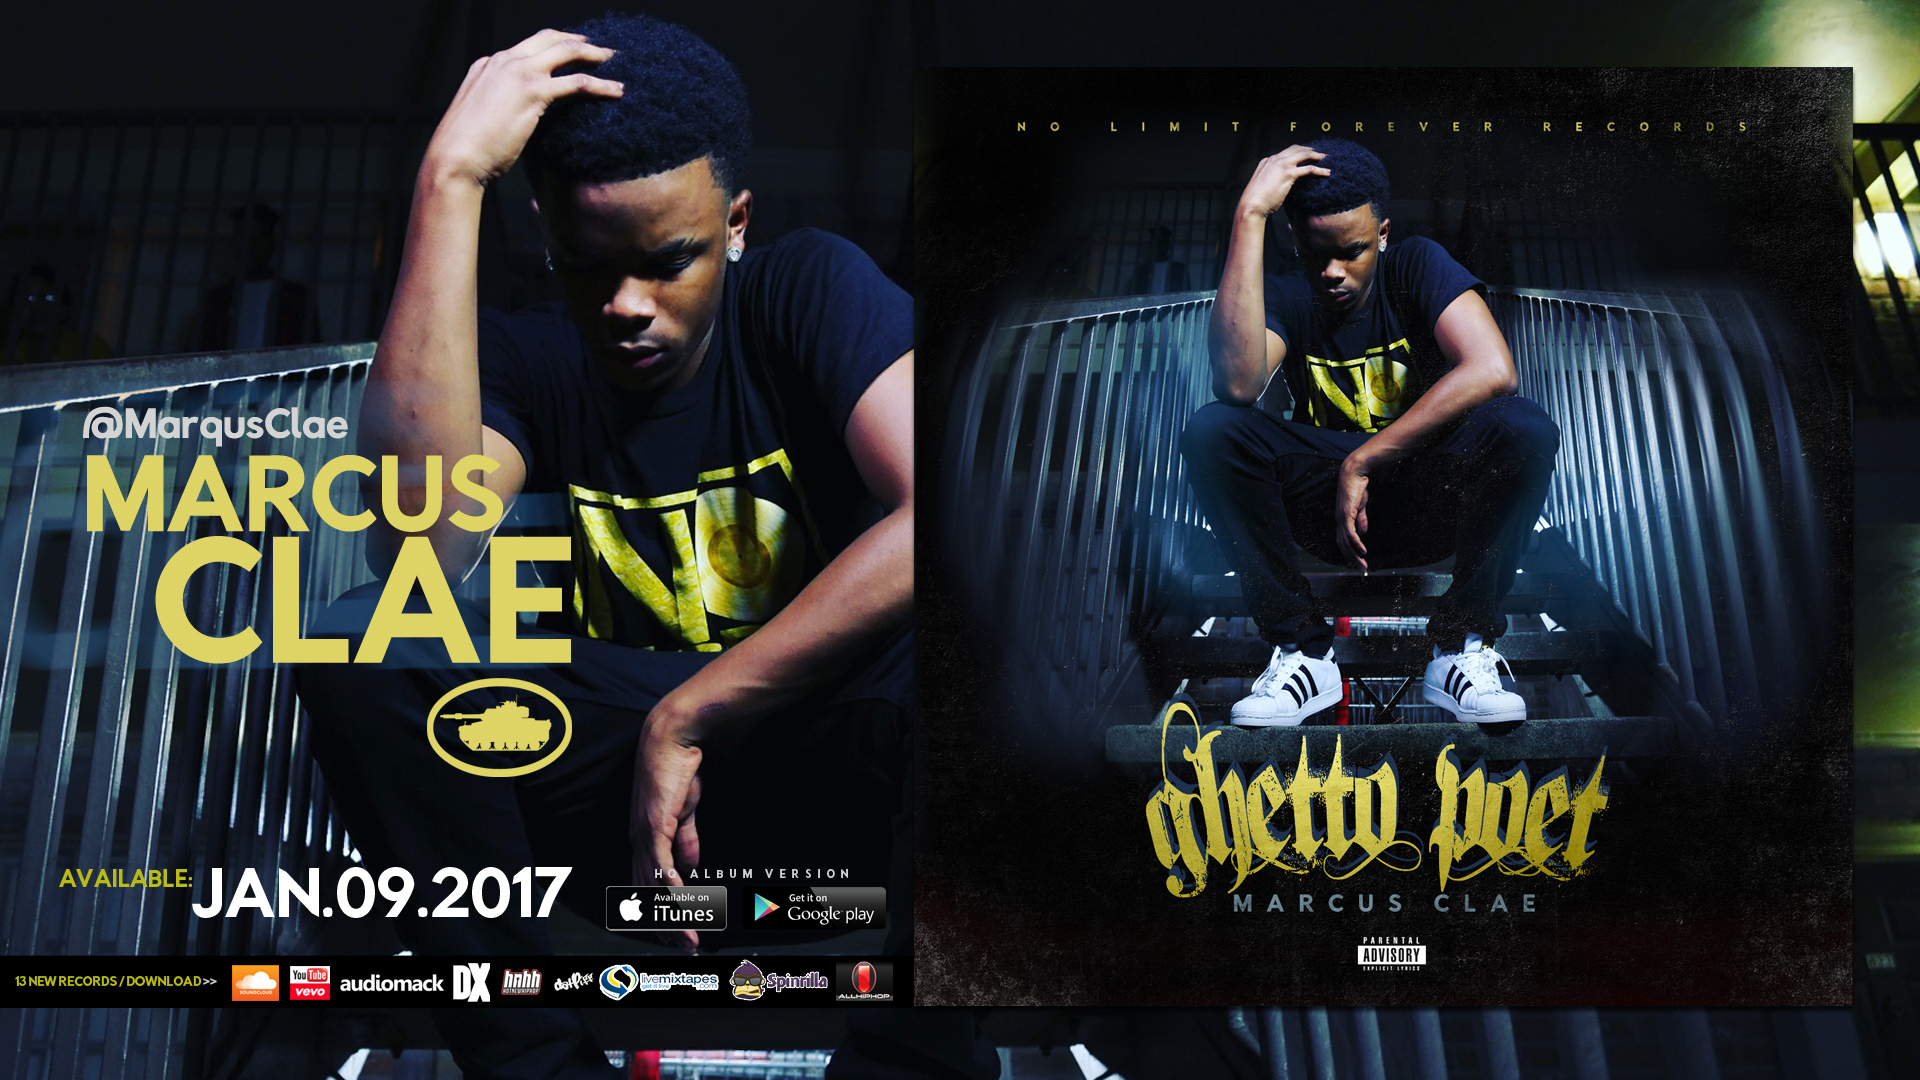 Marqus Clae Delivers A Seasoned Project, The Ghetto Poet